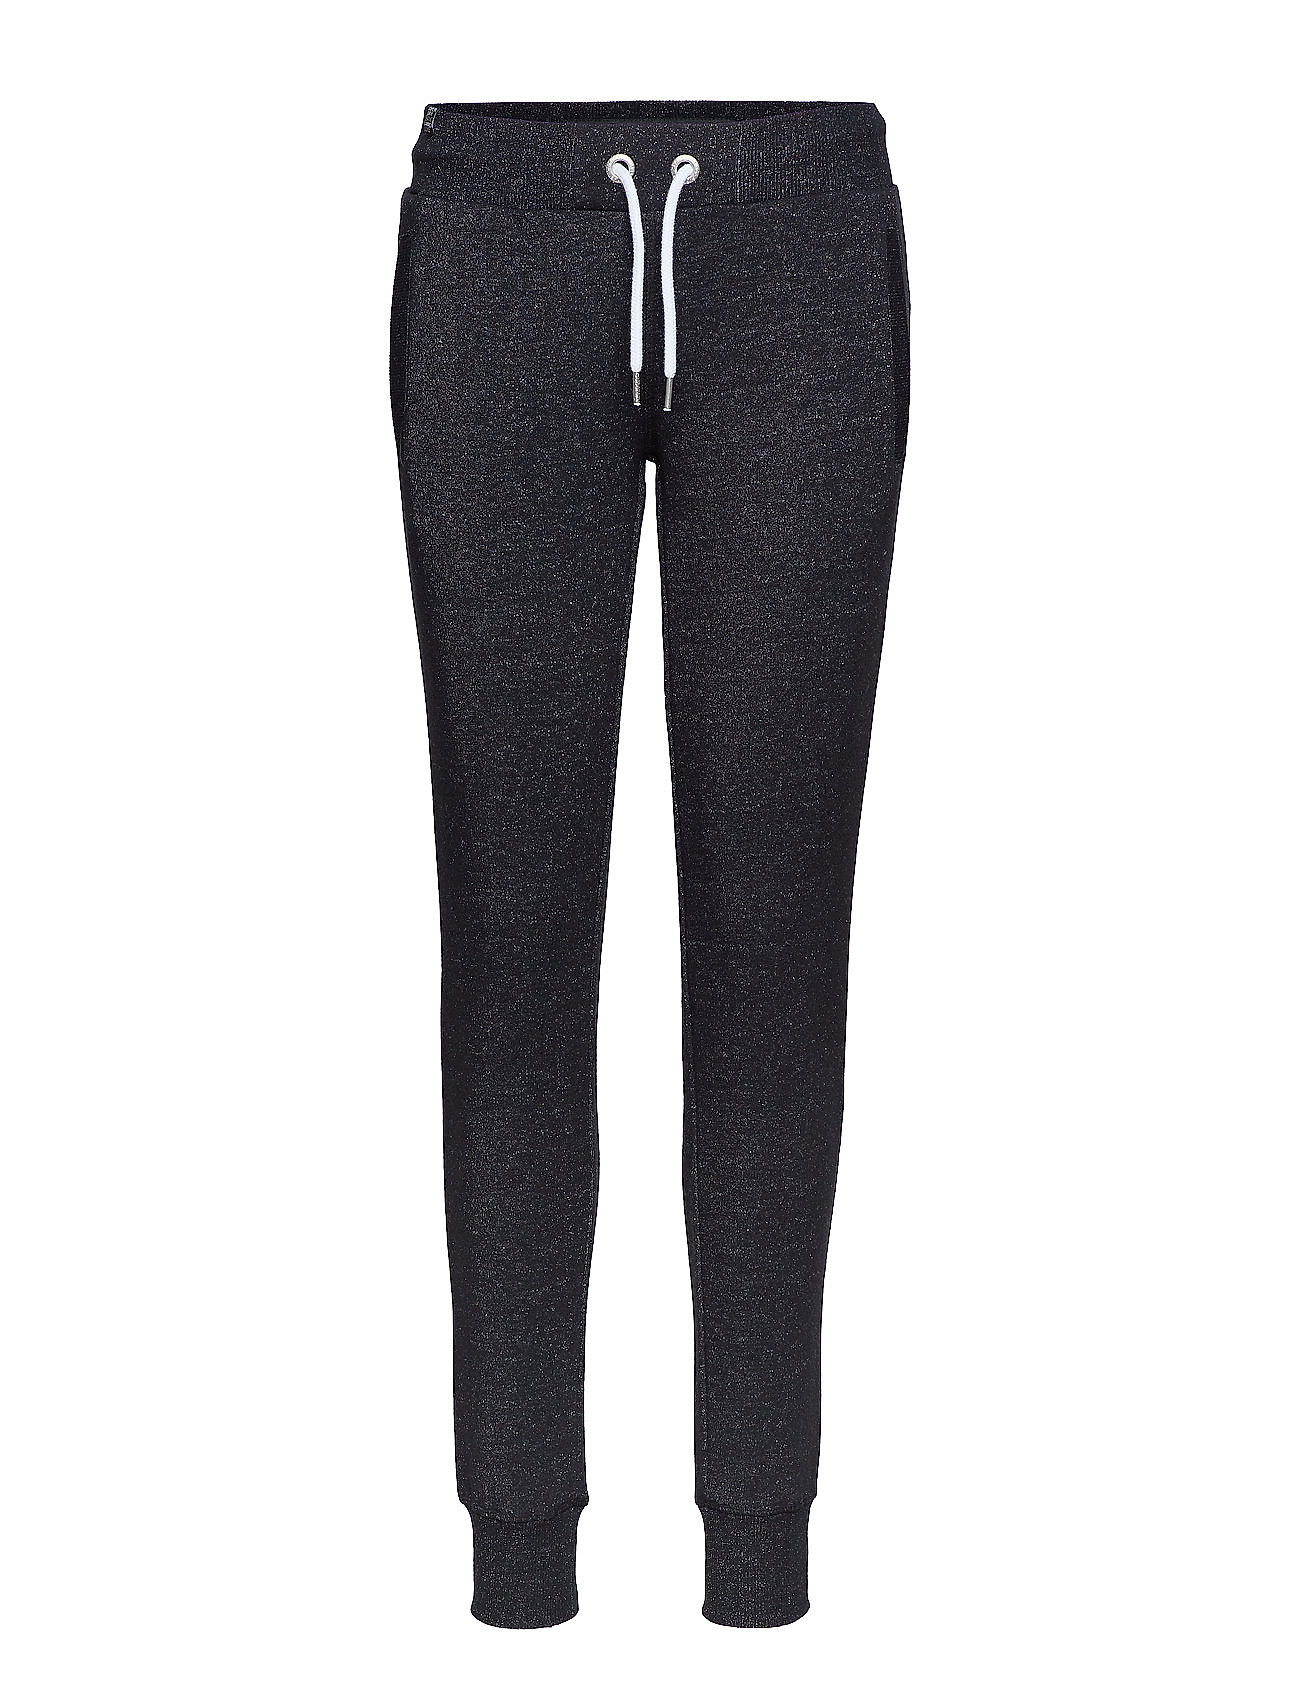 Superdry O L LUXE SLIM JOGGER - BLACK SPARKLE